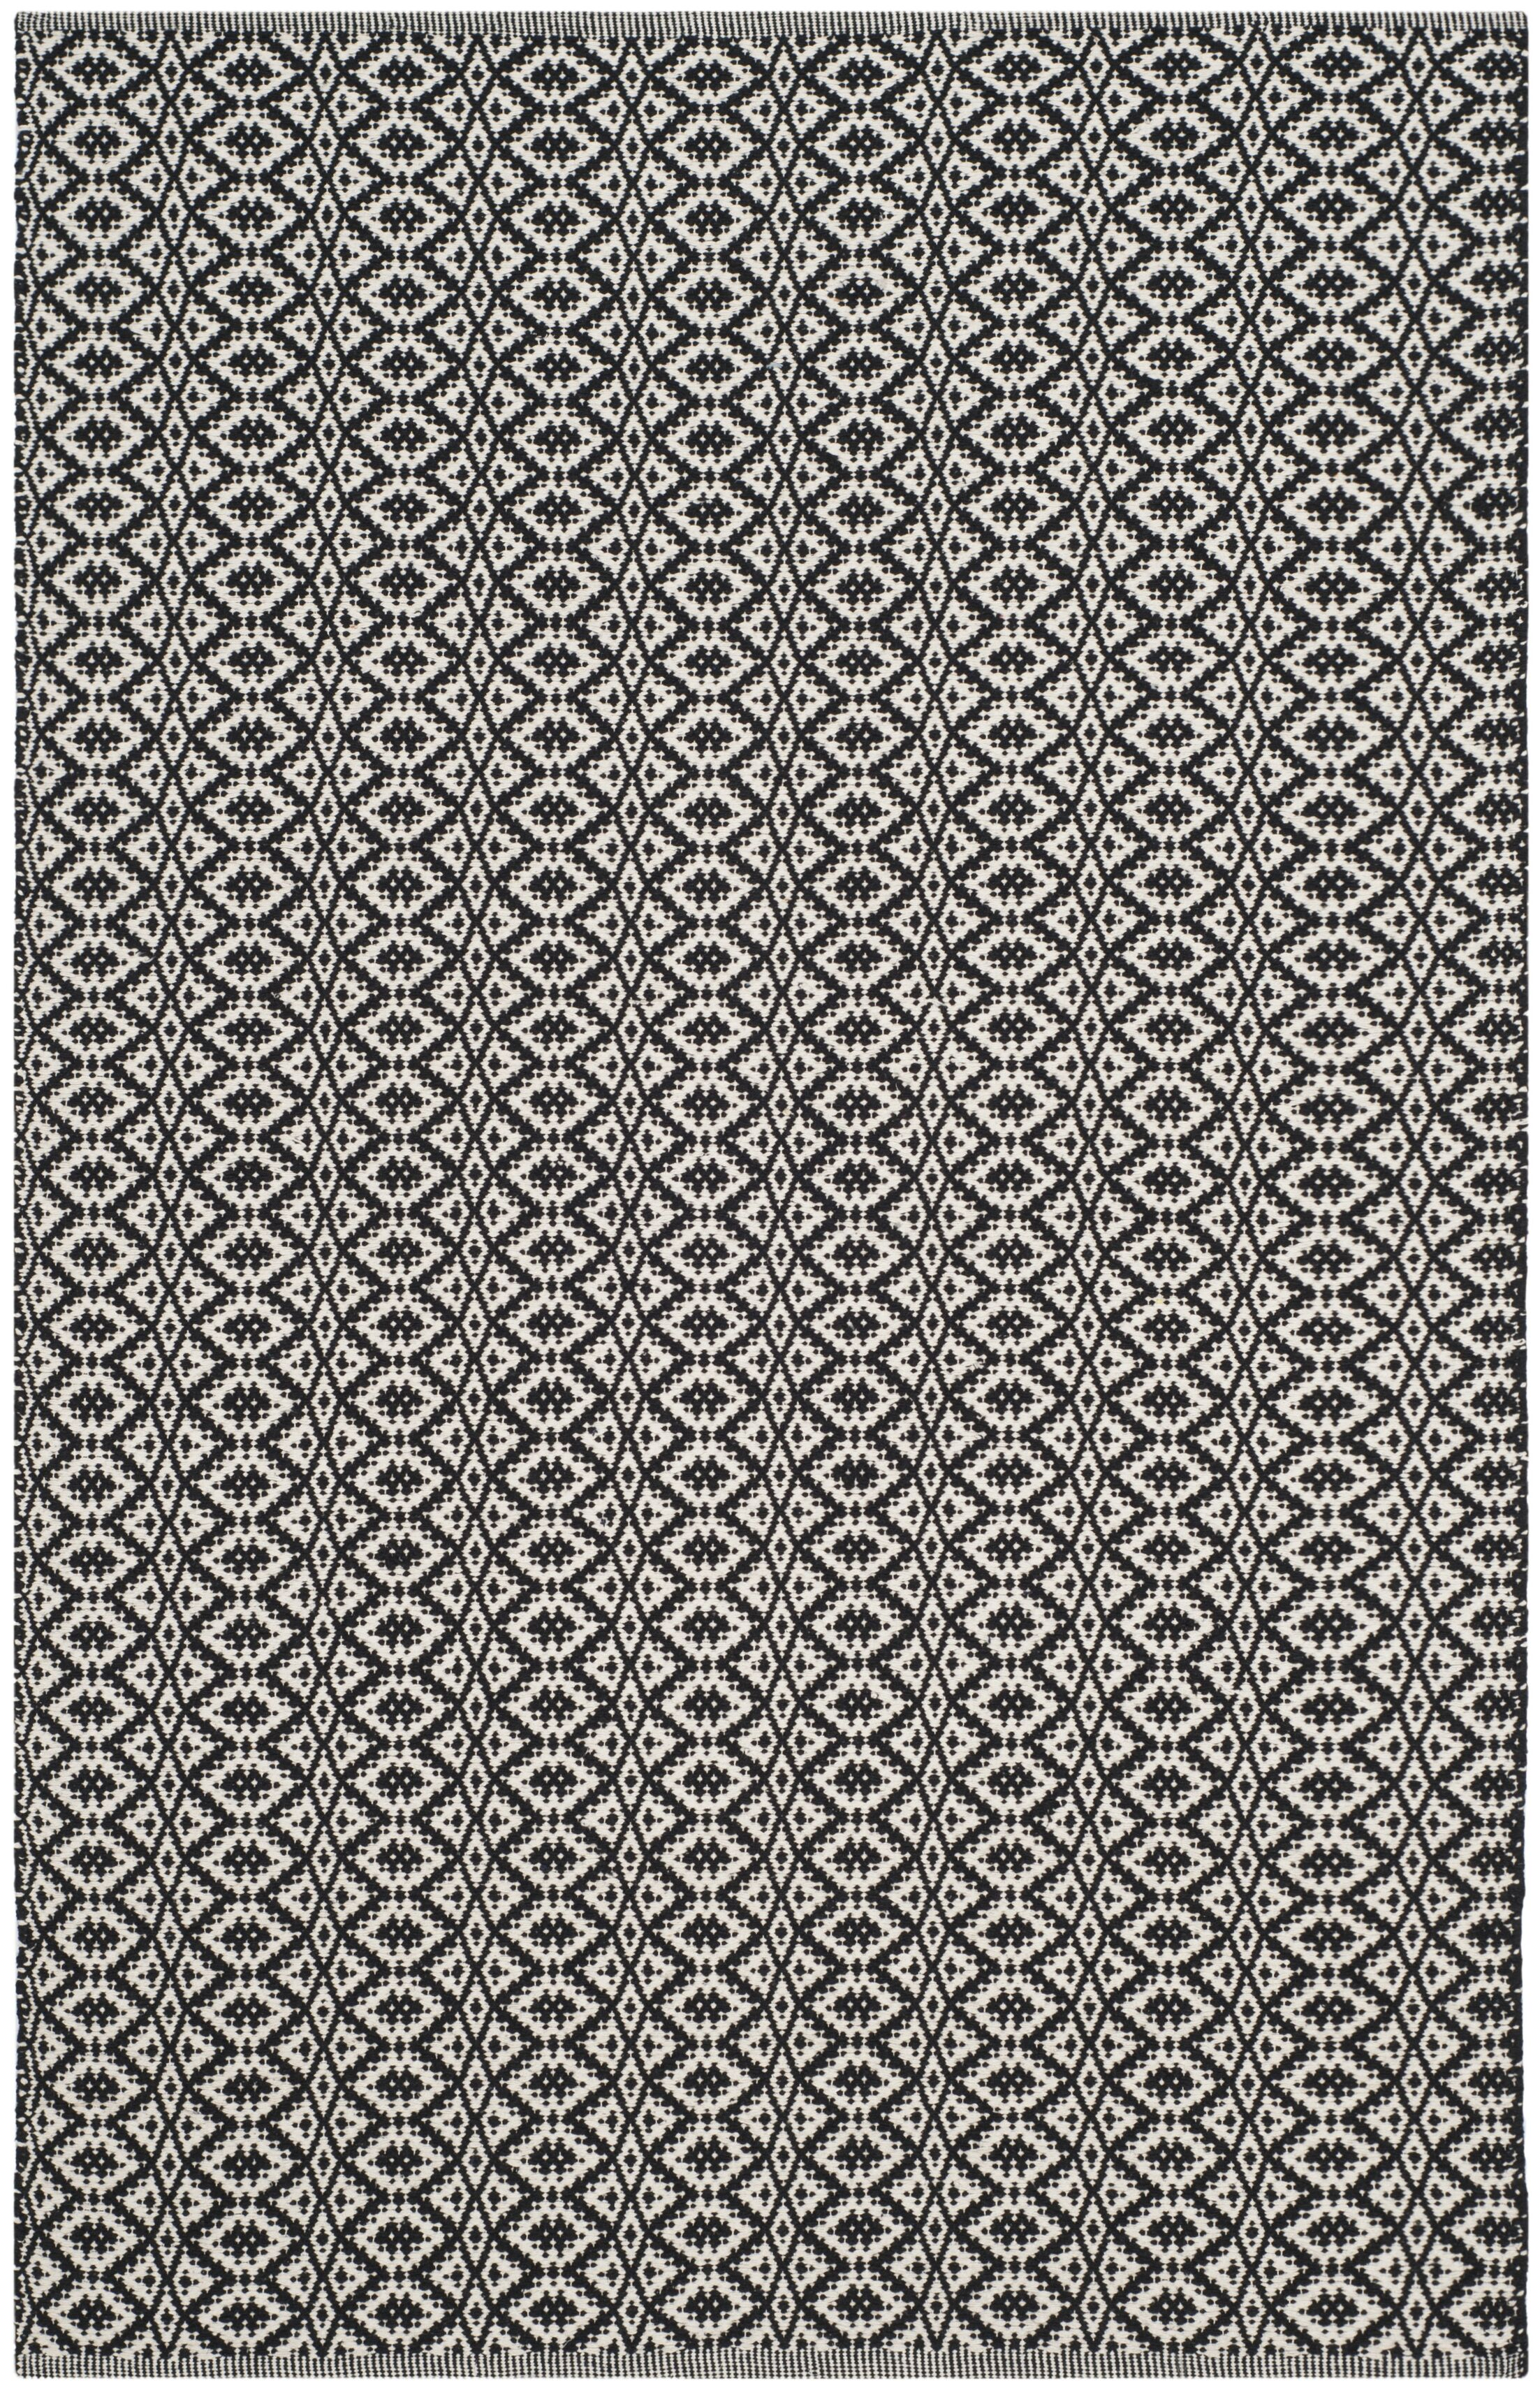 Whyte Hand Woven Ivory/Black Area Rug Rug Size: Rectangle 4' x 6'